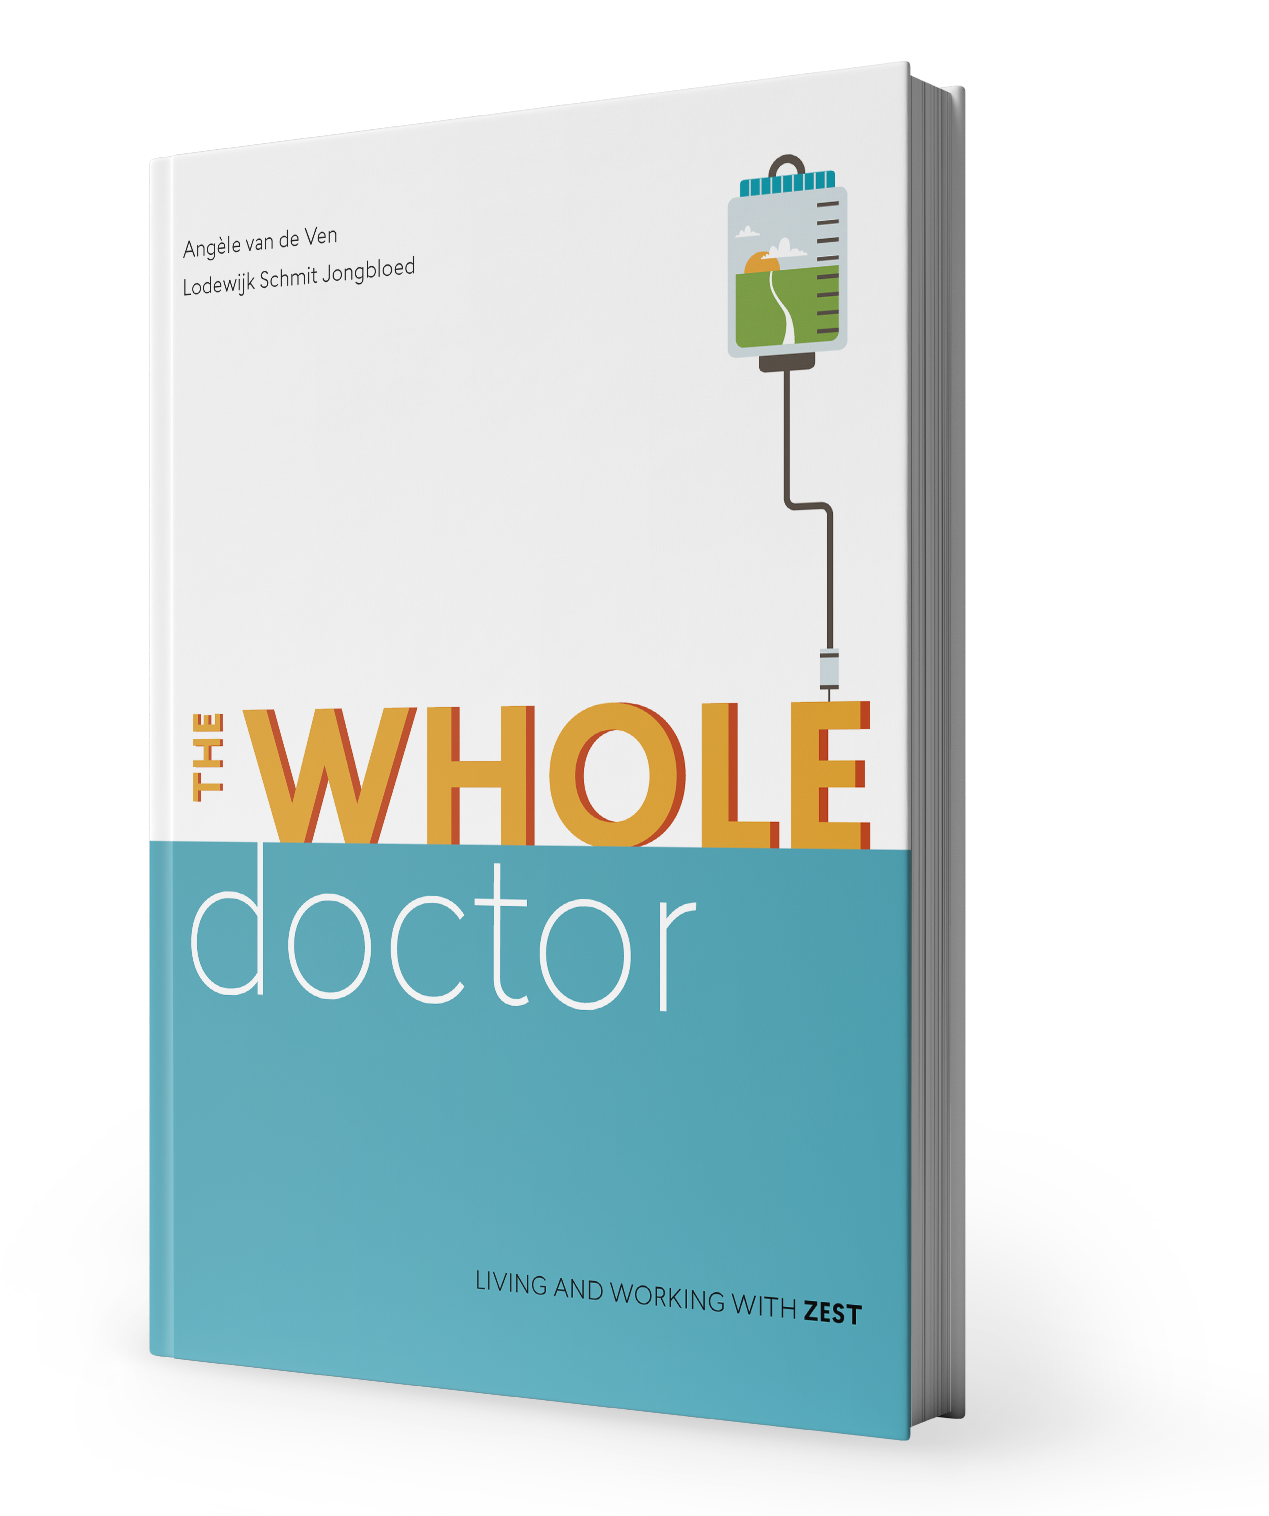 the WHOLE doctor